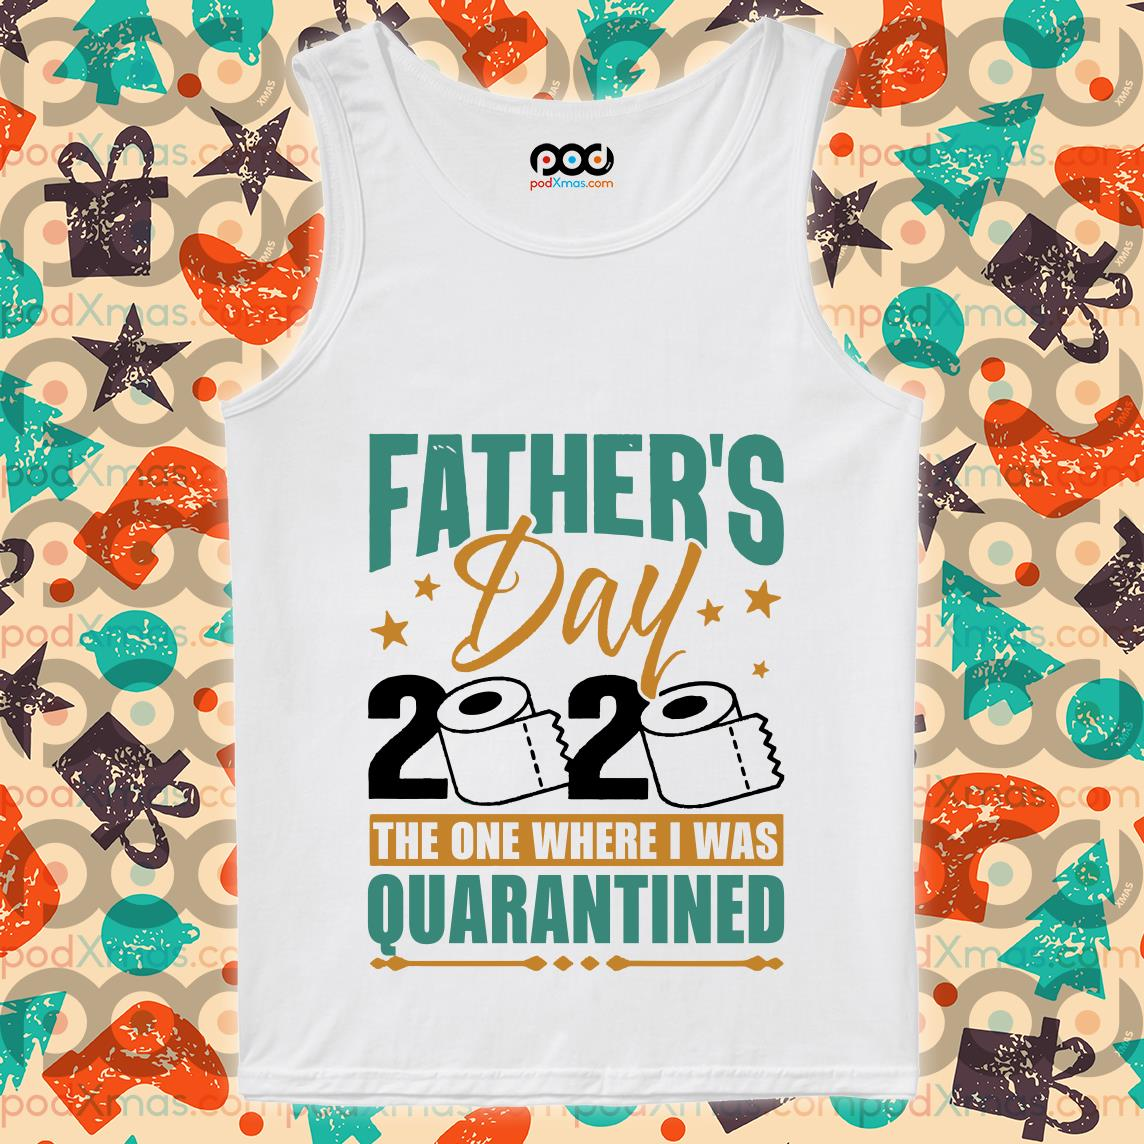 fathers day 2020 the one where i was quarantined tank top 1